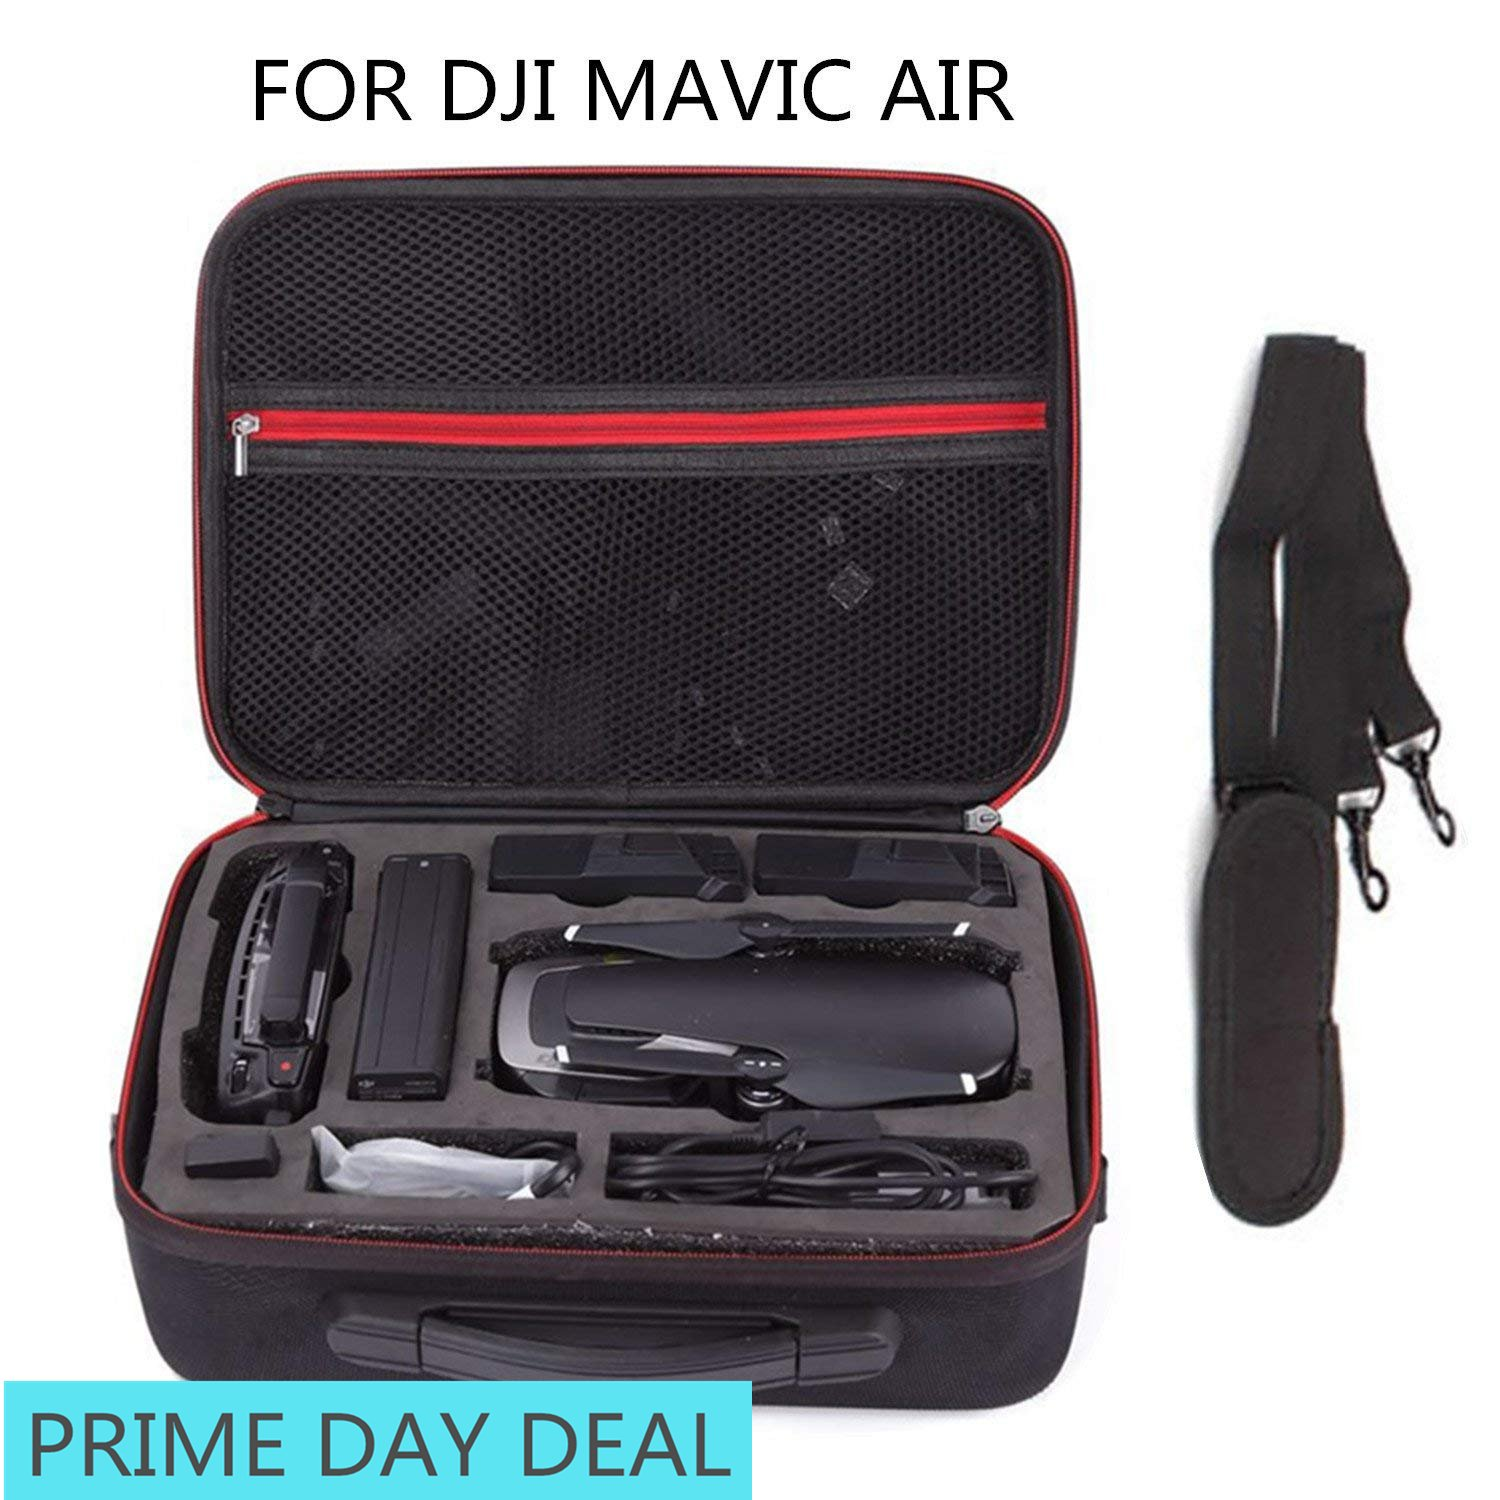 Carrying Case for DJI Mavic Air - Waterproof | Durable | Compact | Portable Travel Hardshell Shoulder Bag Backpack Hardshell Suitcase by Dreamlizer (For Mavic Air)